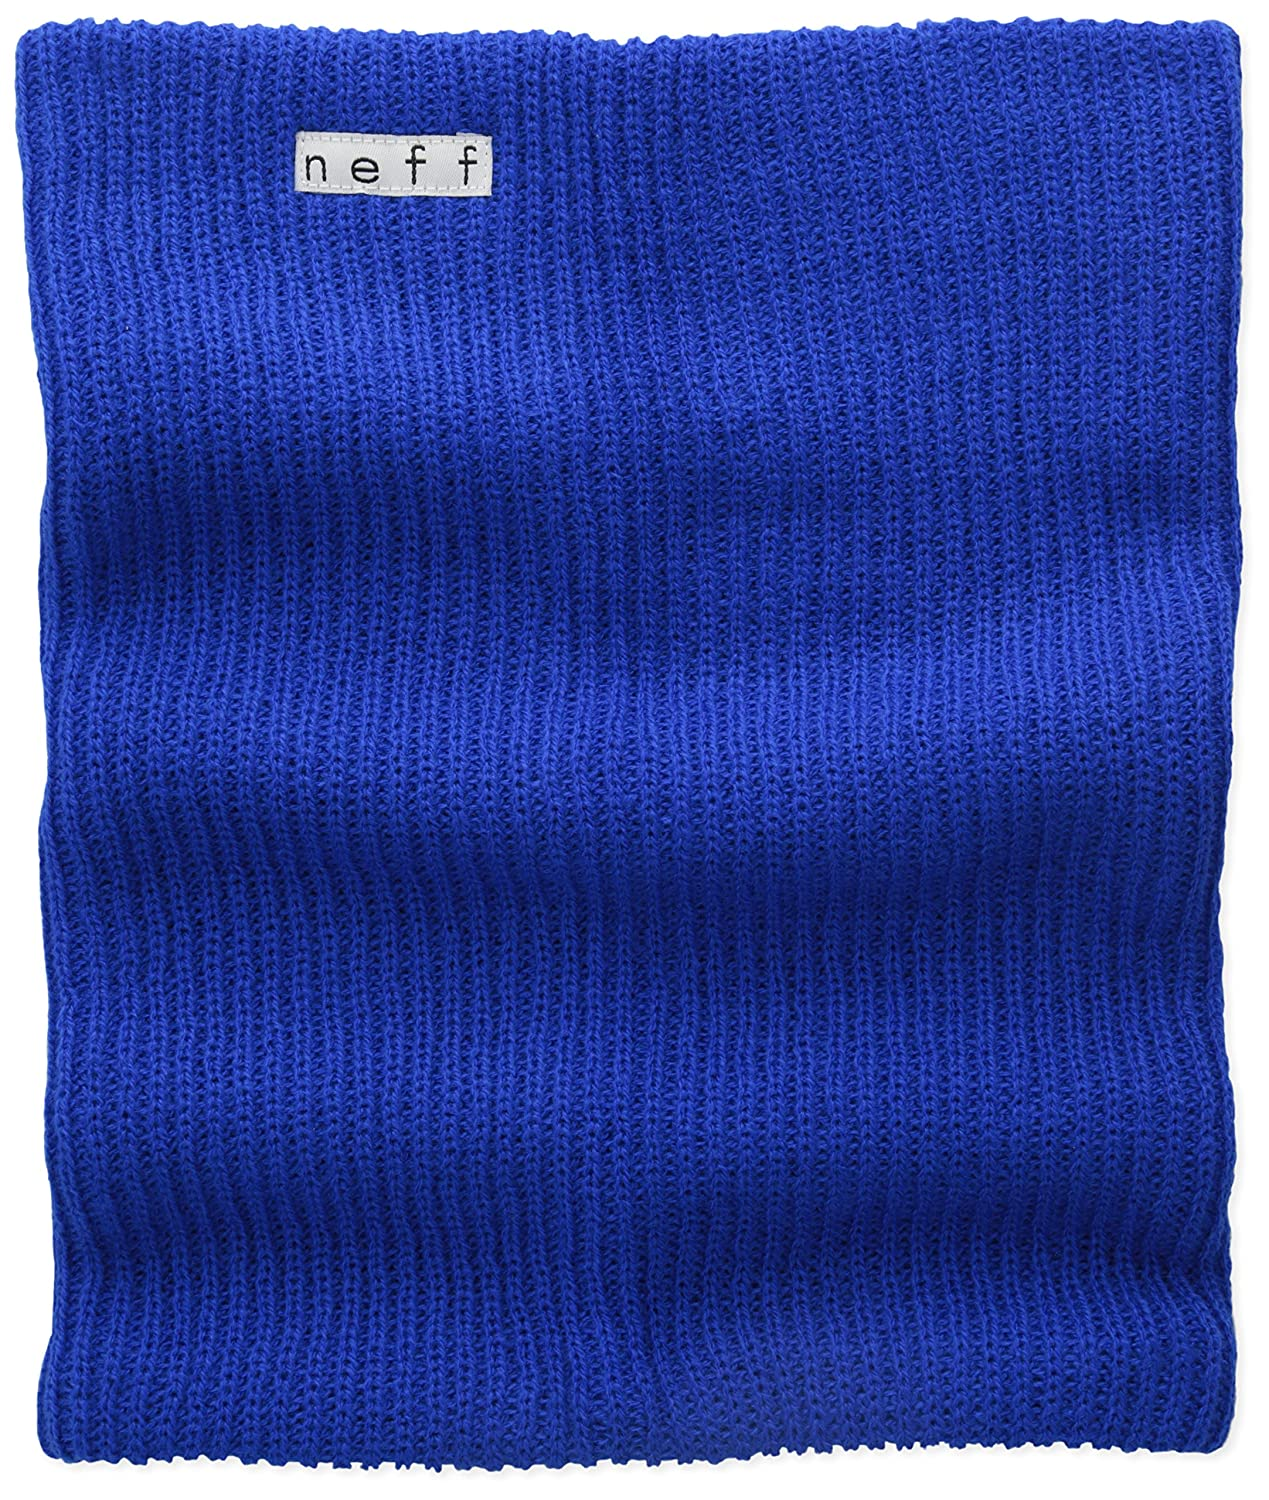 neff Mens Daily Gaiter Blue One Size Neff Young Men/'s 14F19021